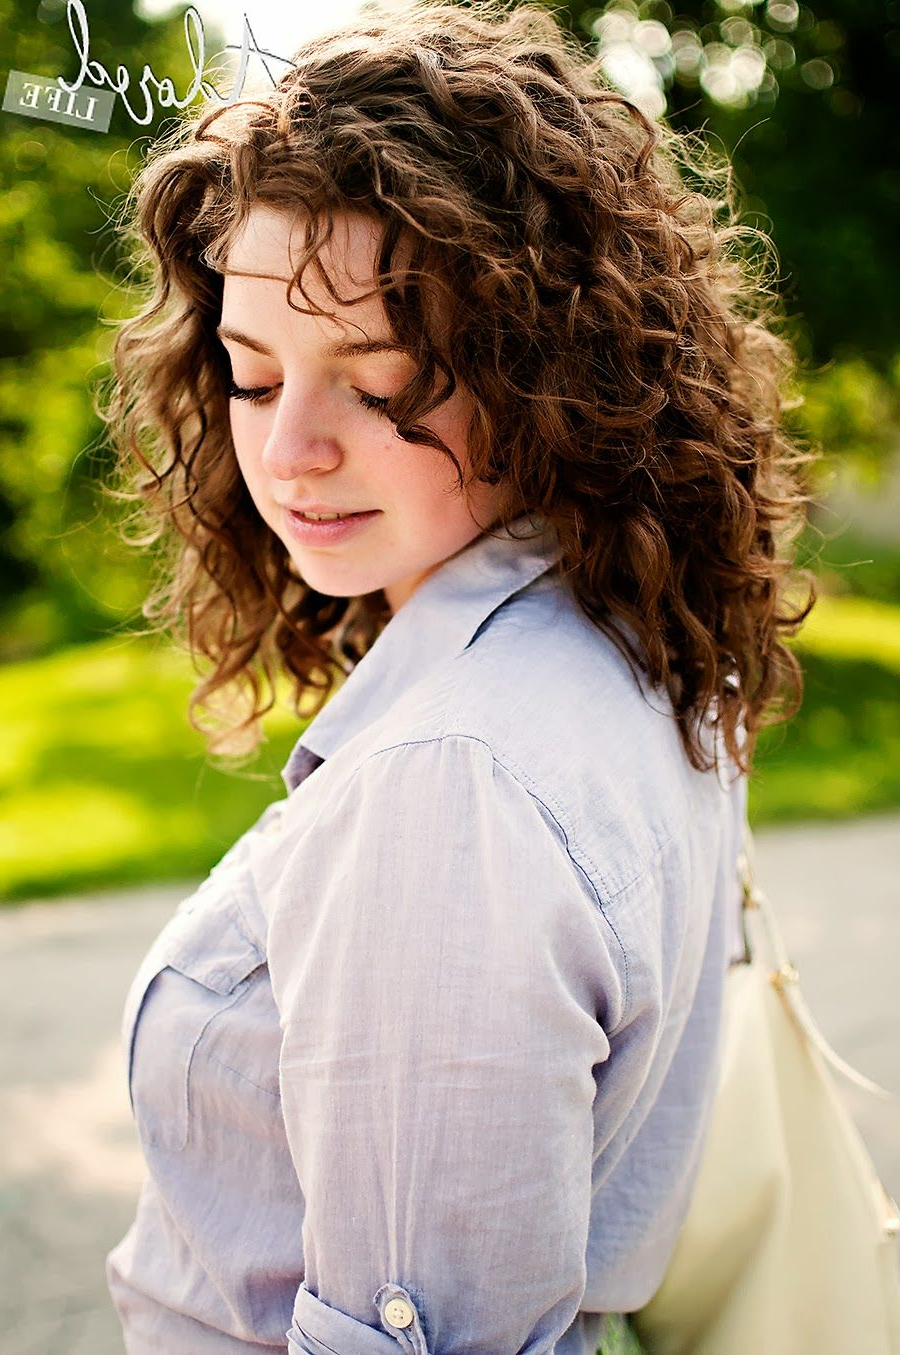 Well Known Medium Haircuts For Naturally Curly Hair In Curly Hair Care And Hairstyles For Those Pinterest Worthy Curls (View 18 of 20)